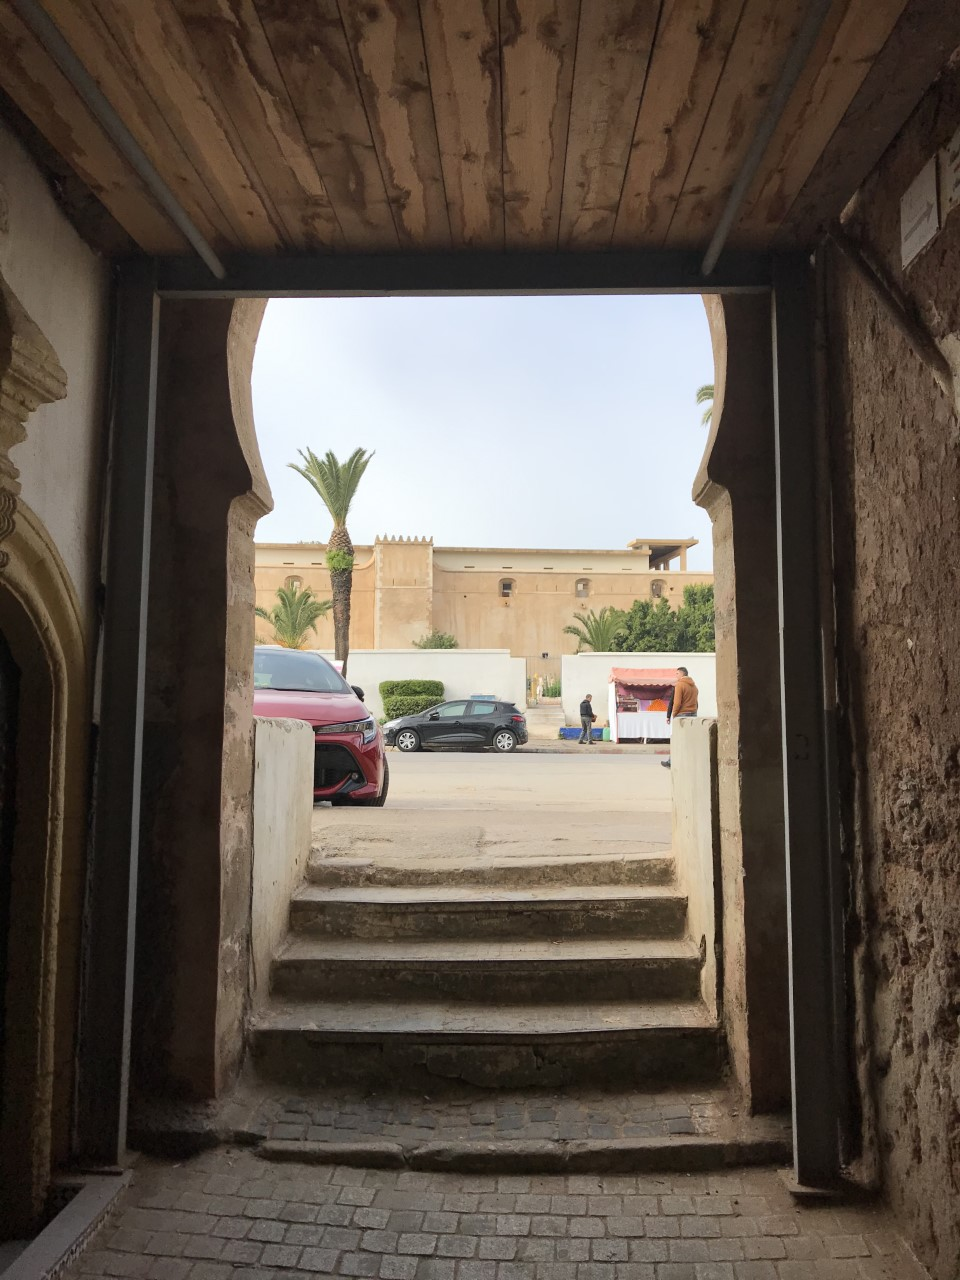 A passageway leading into the Medina of Rabat